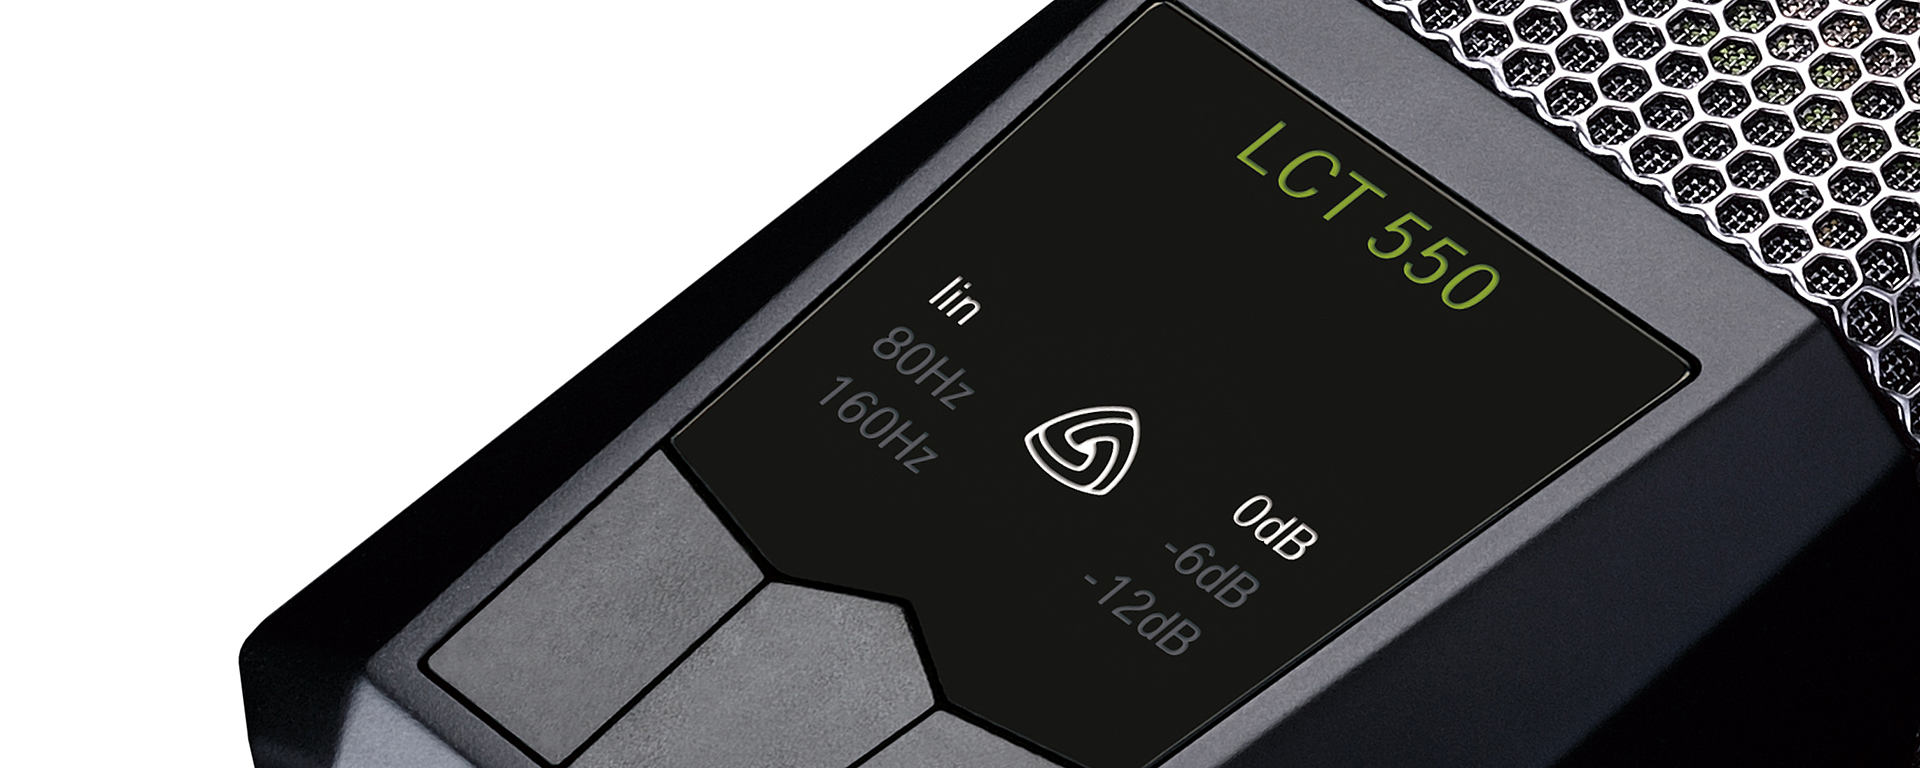 LCT 550 illuminated user interface